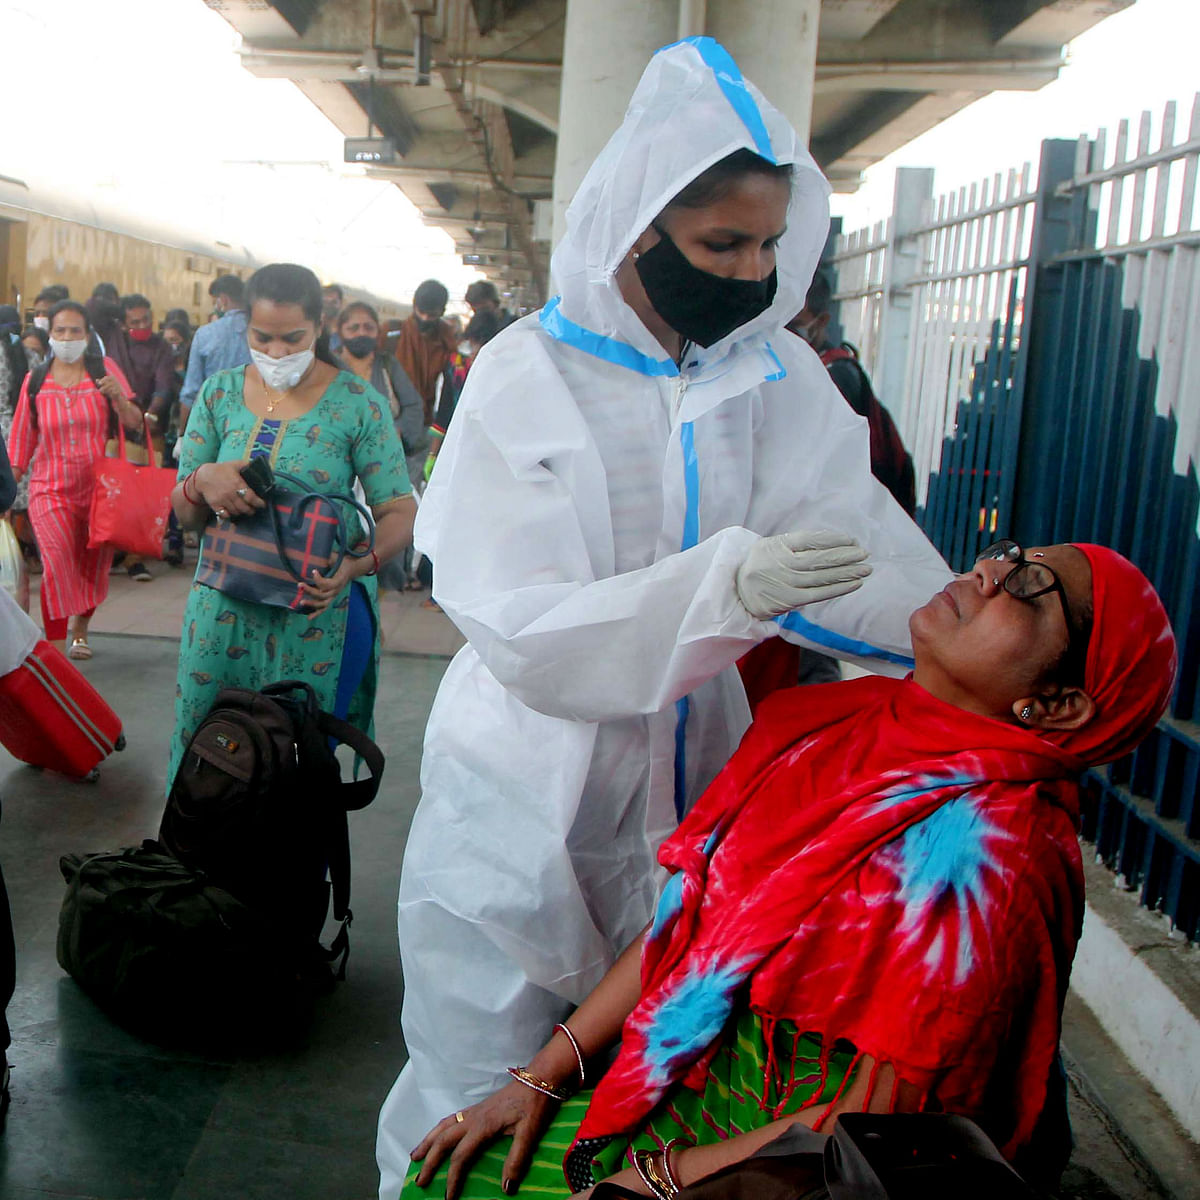 COVID-19 latest update: India reports 12,286 new cases, 91 deaths in last 24 hrs